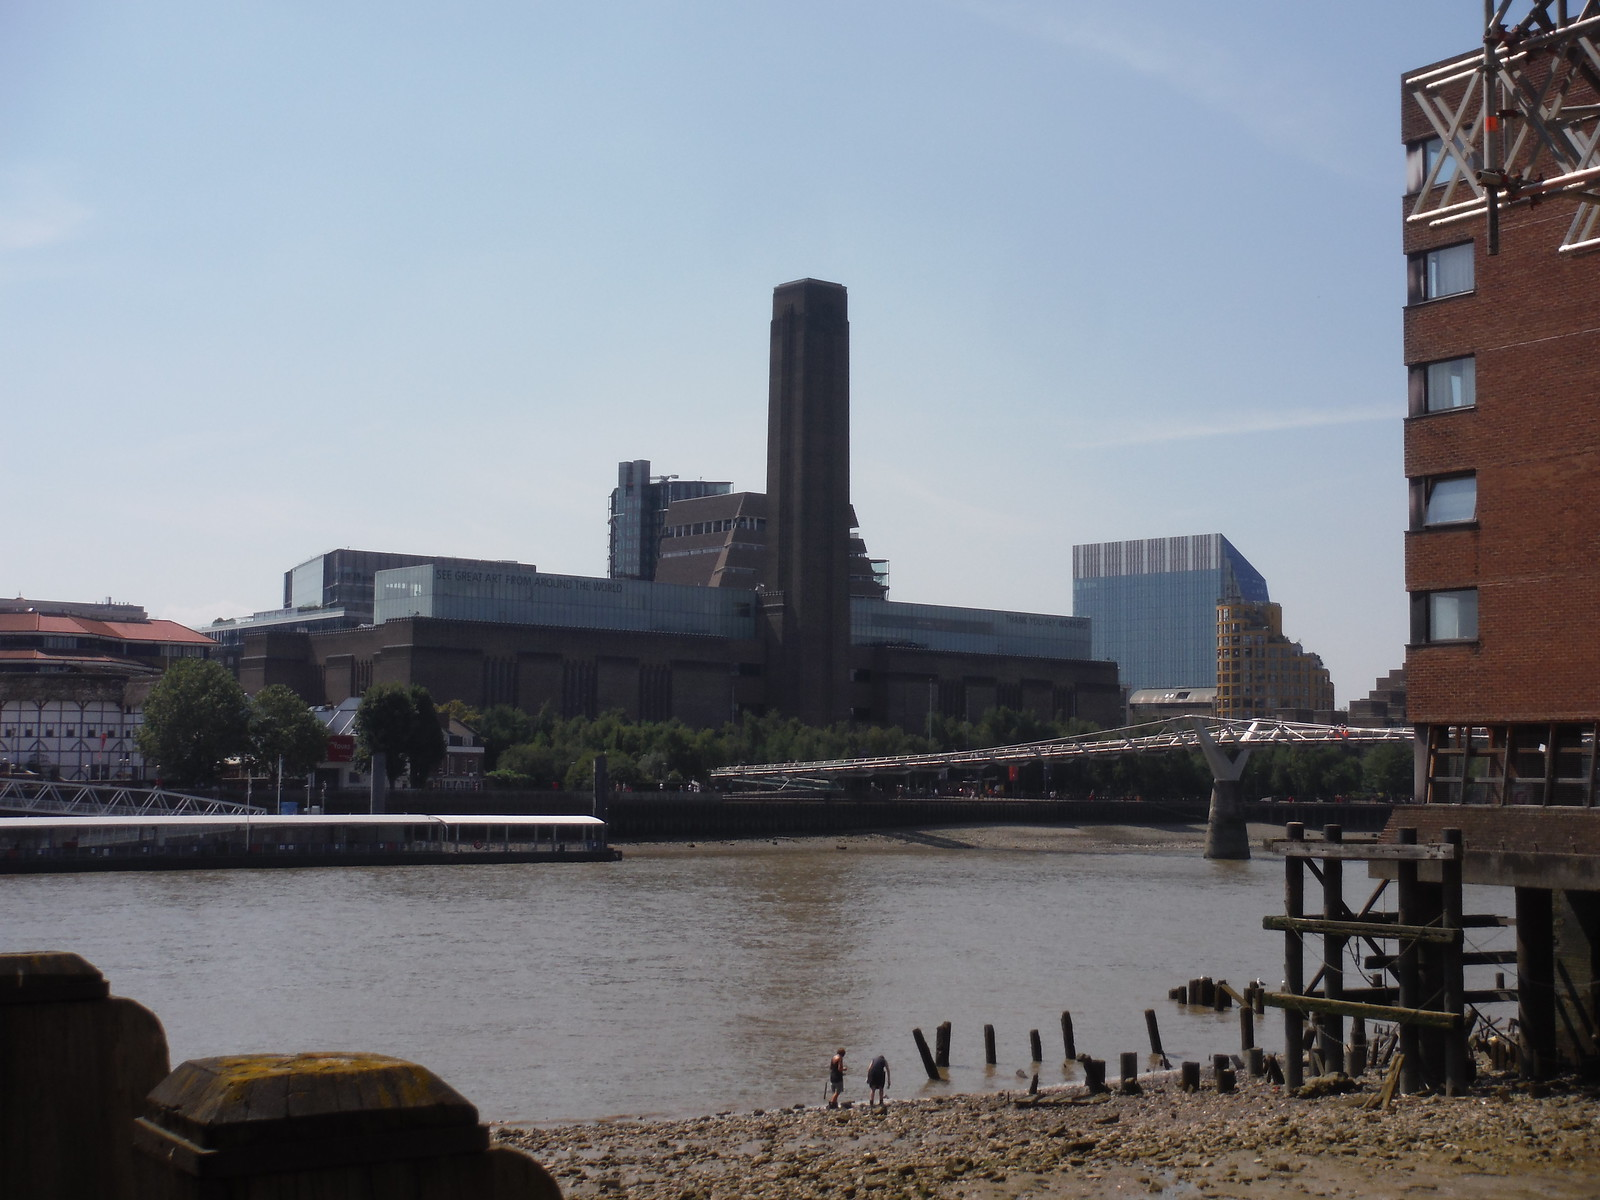 Tate Modern from Queenhithe Inlet SWC Short Walk 47 - The London Wall [Modern Waterfront Circular Walk]